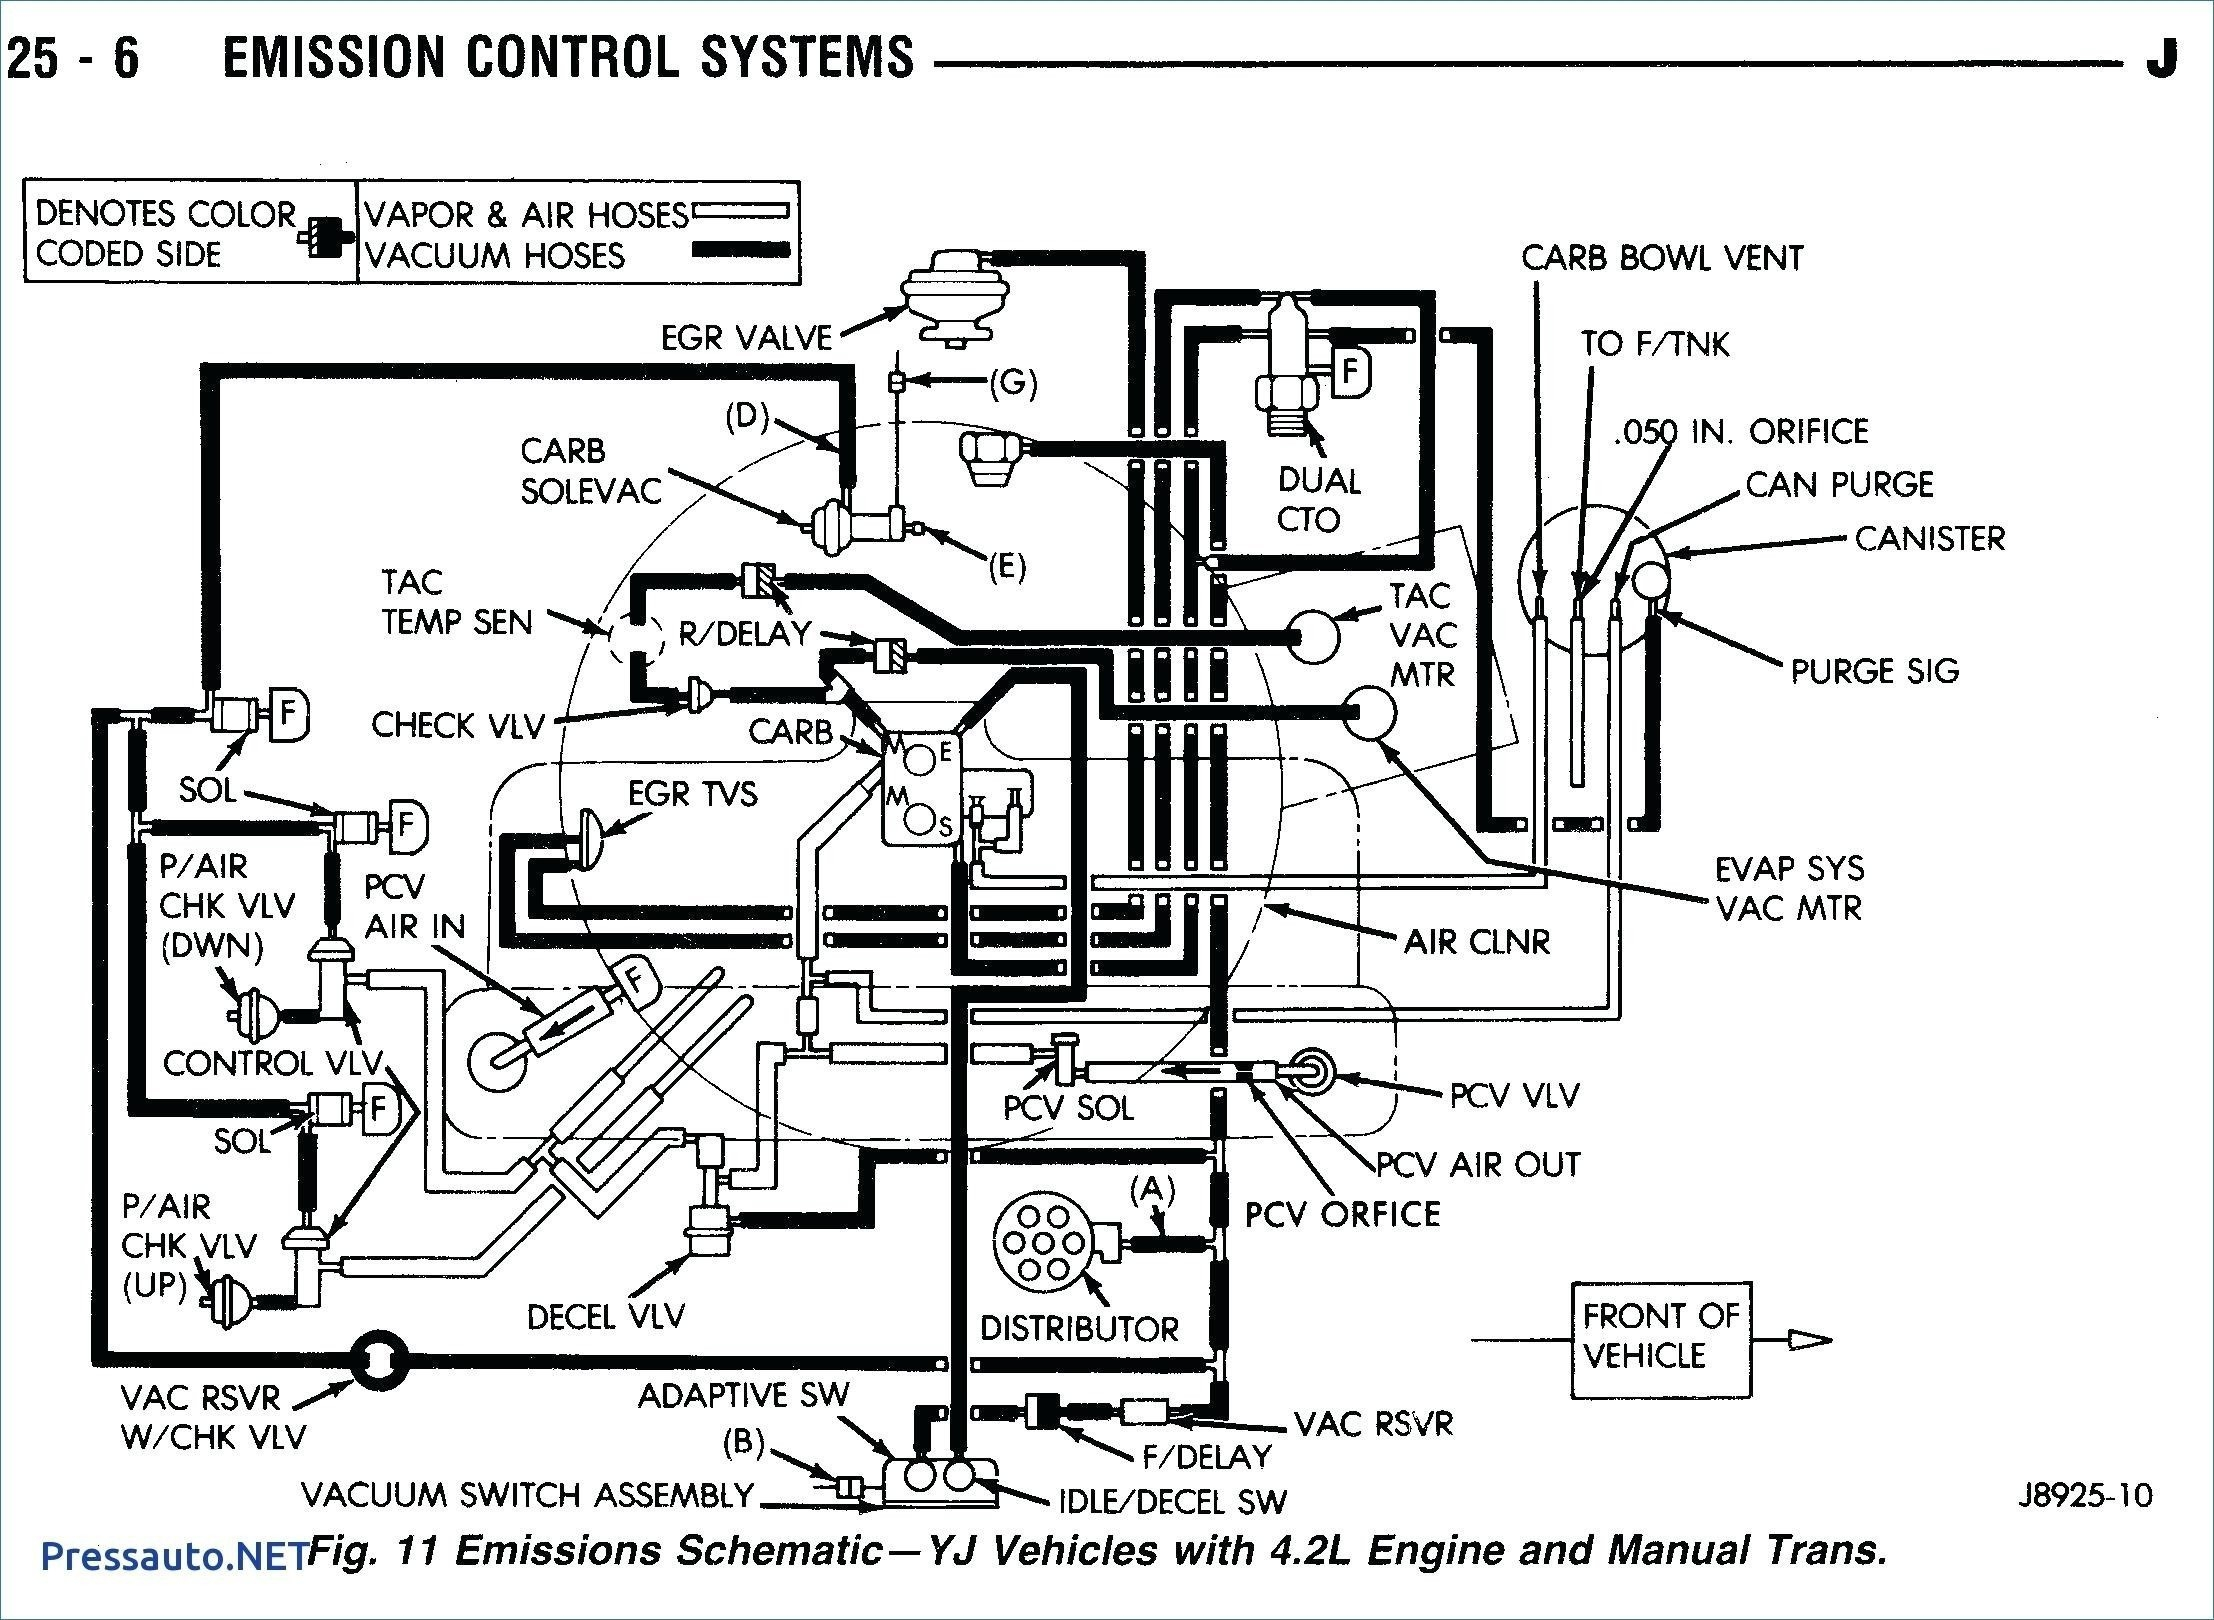 1992 jeep wrangler wiring schematic | free wiring diagram 1981 jeep cherokee wiring diagram schematic 1998 jeep cherokee wiring diagram